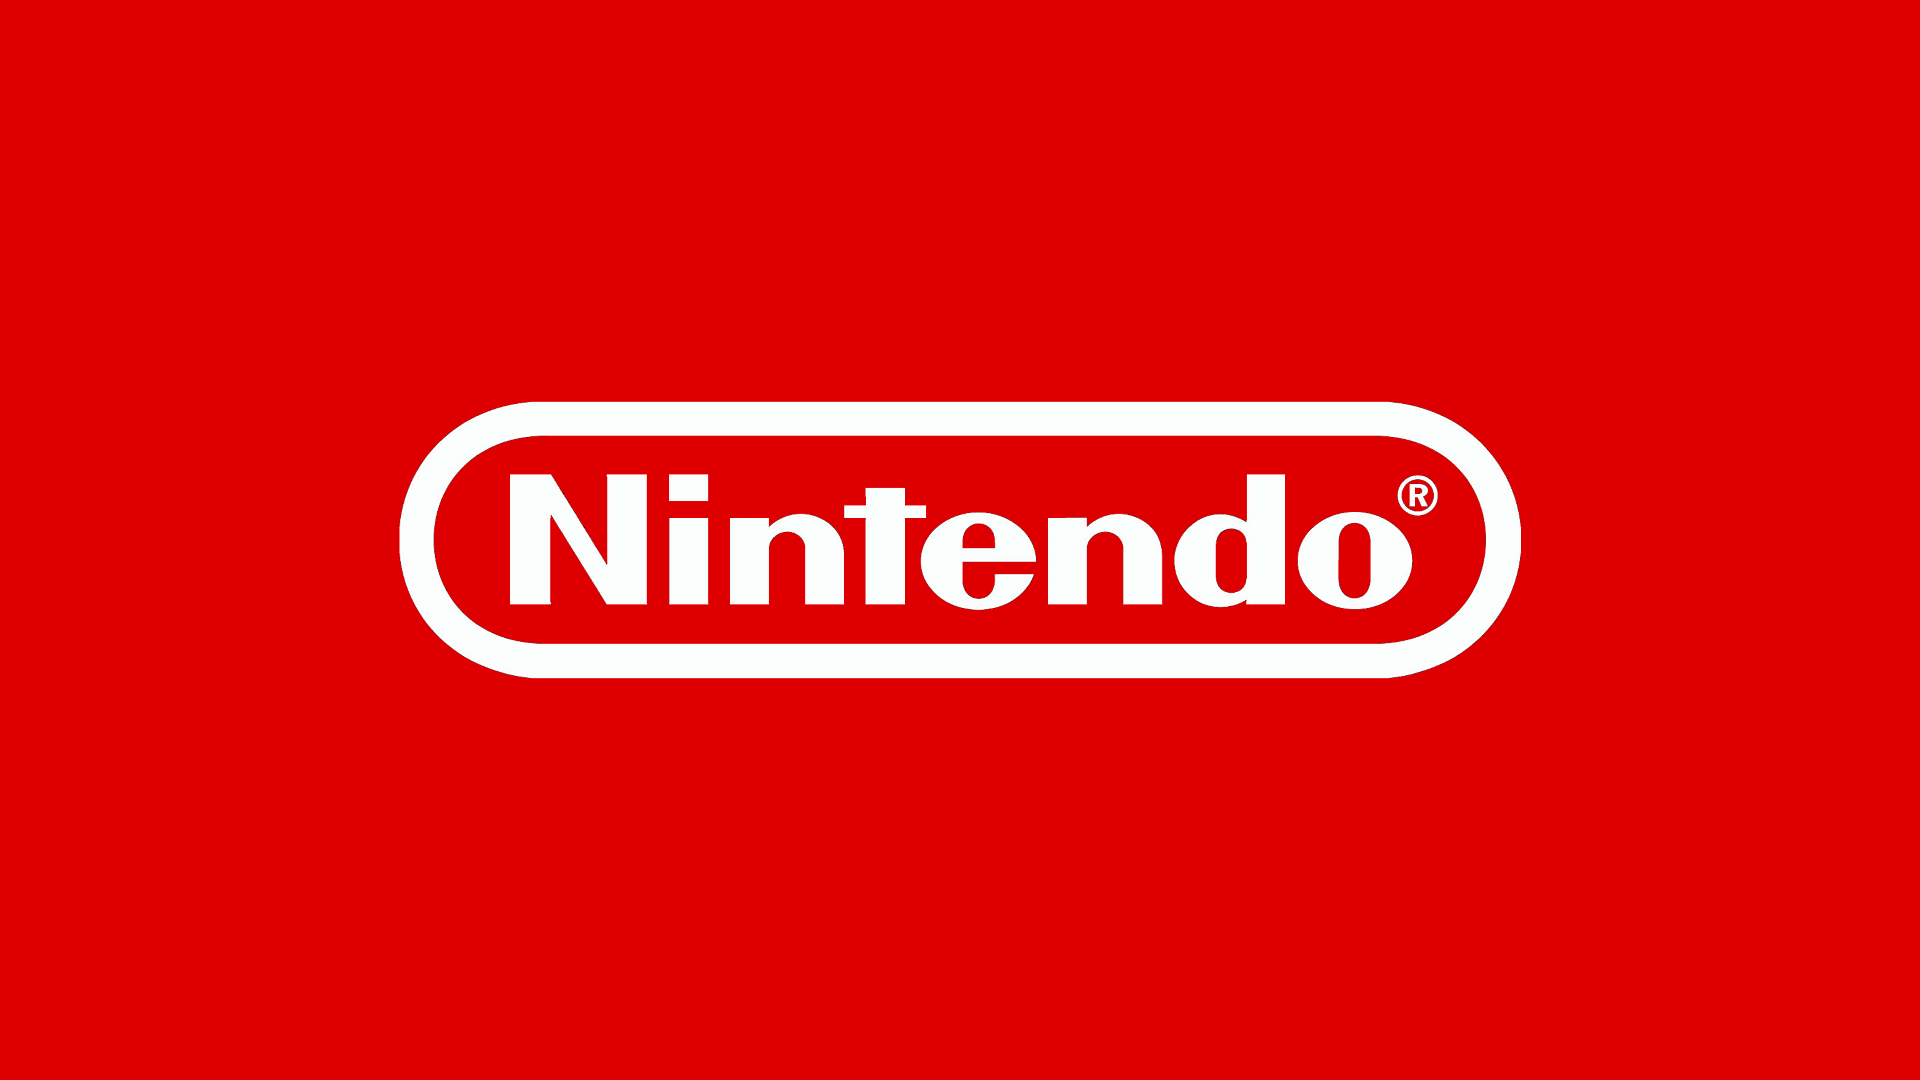 Nintendo Logo Wallpapers Full Hd – Epic Wallpaperz